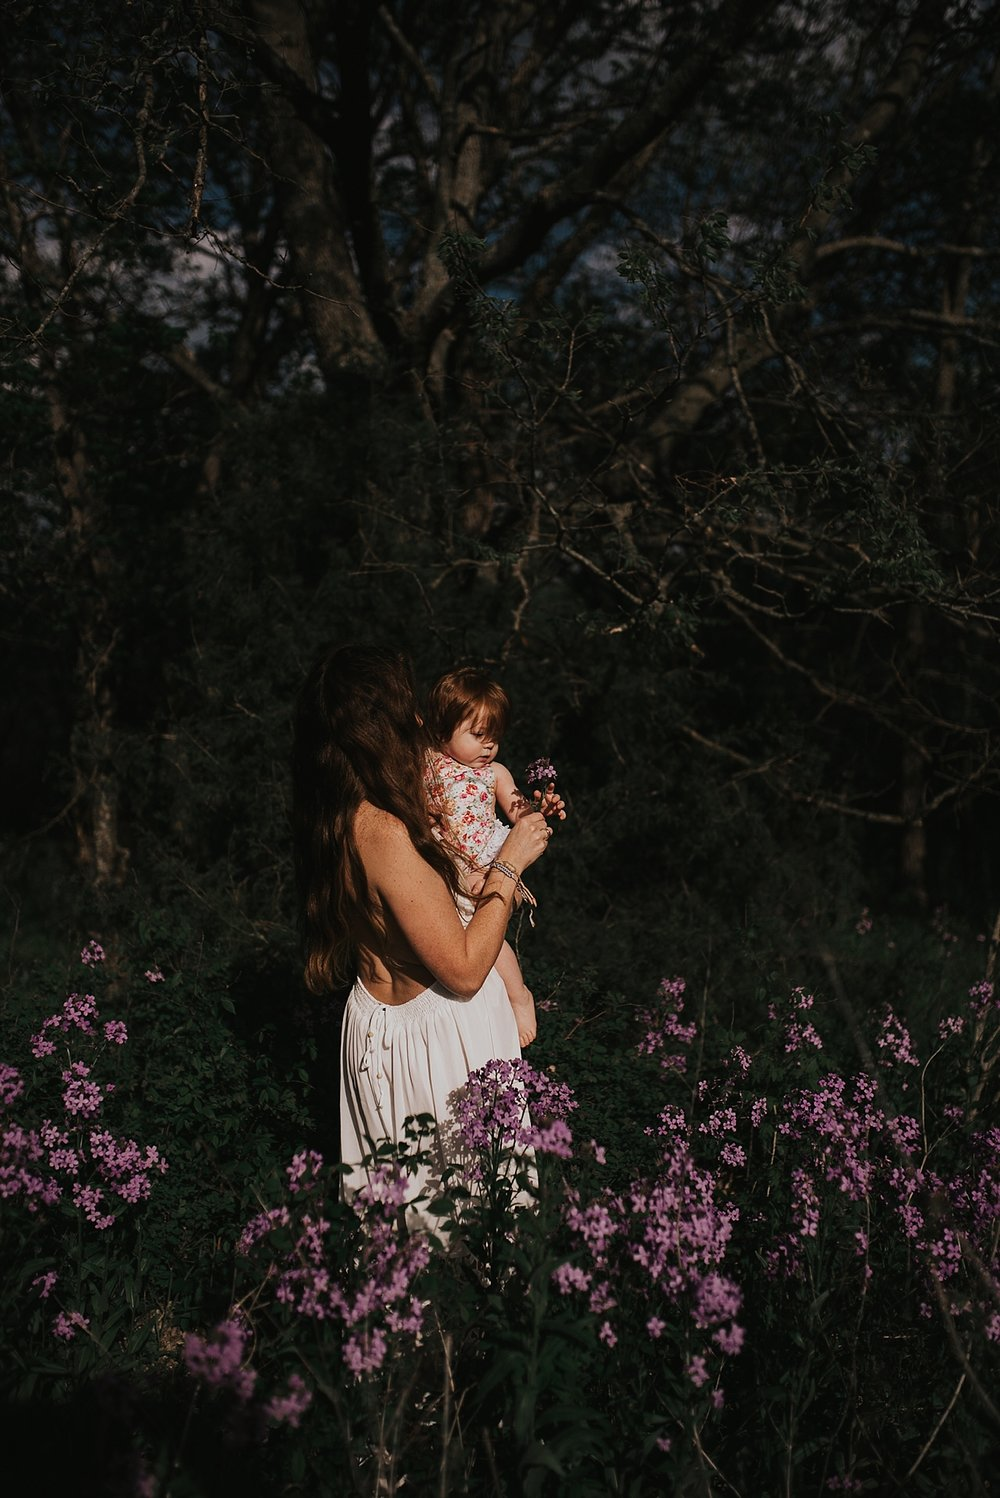 twyla jones photography - mother daughter - field and forest-4265_treasure coast florida.jpg